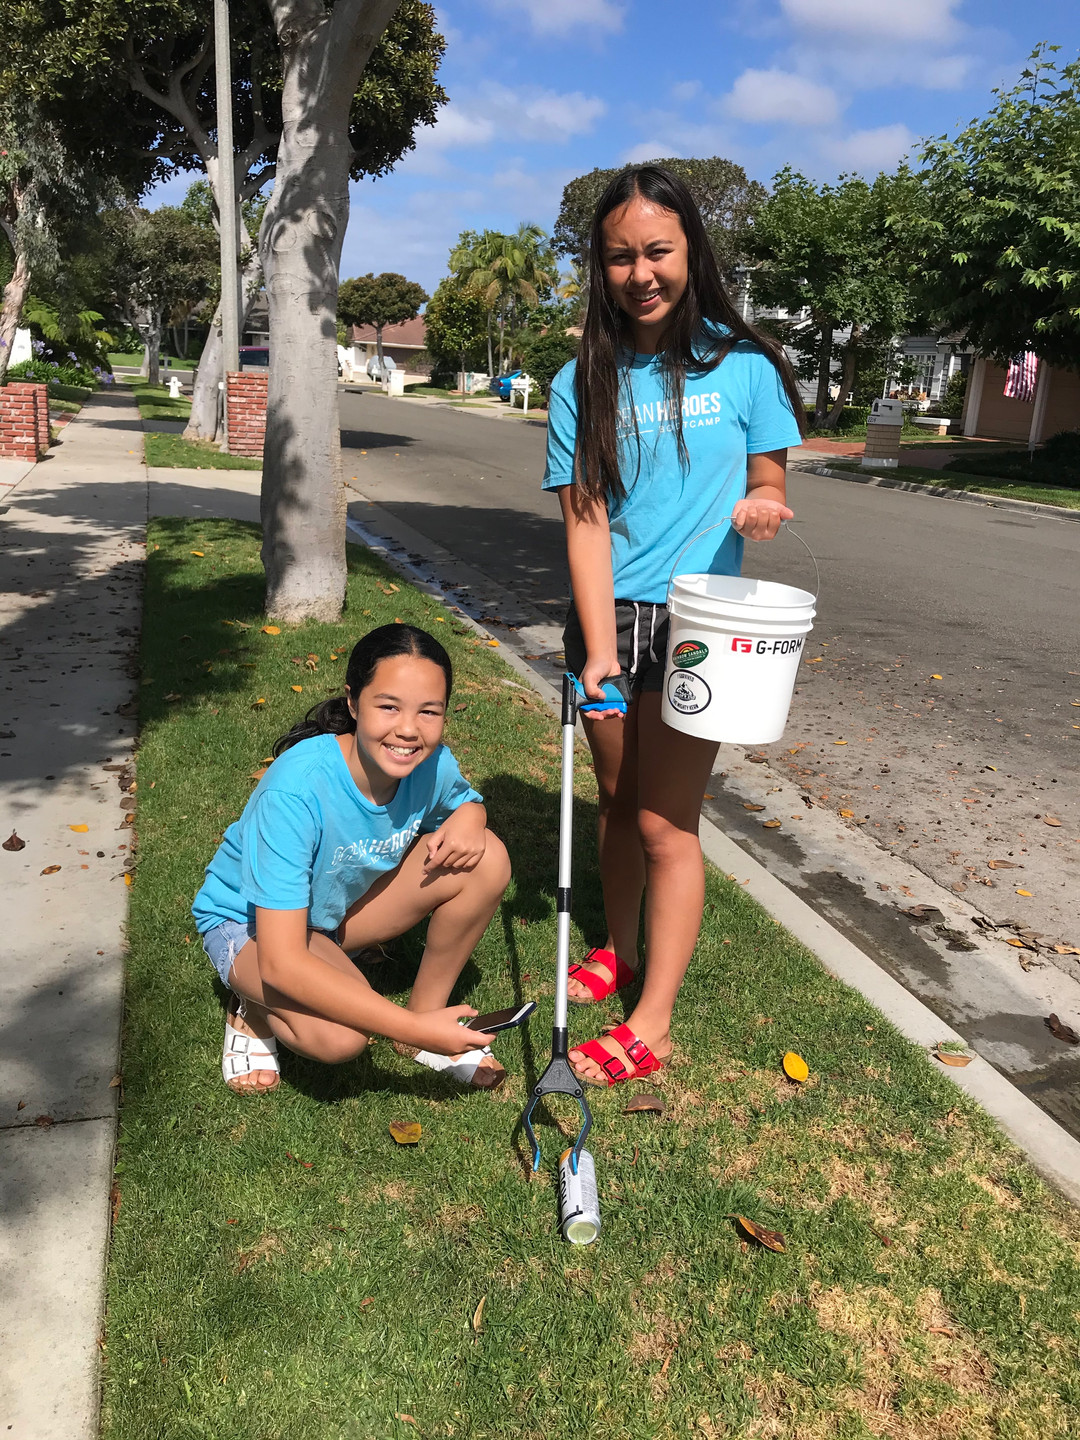 Neighborhood clean up with my sister